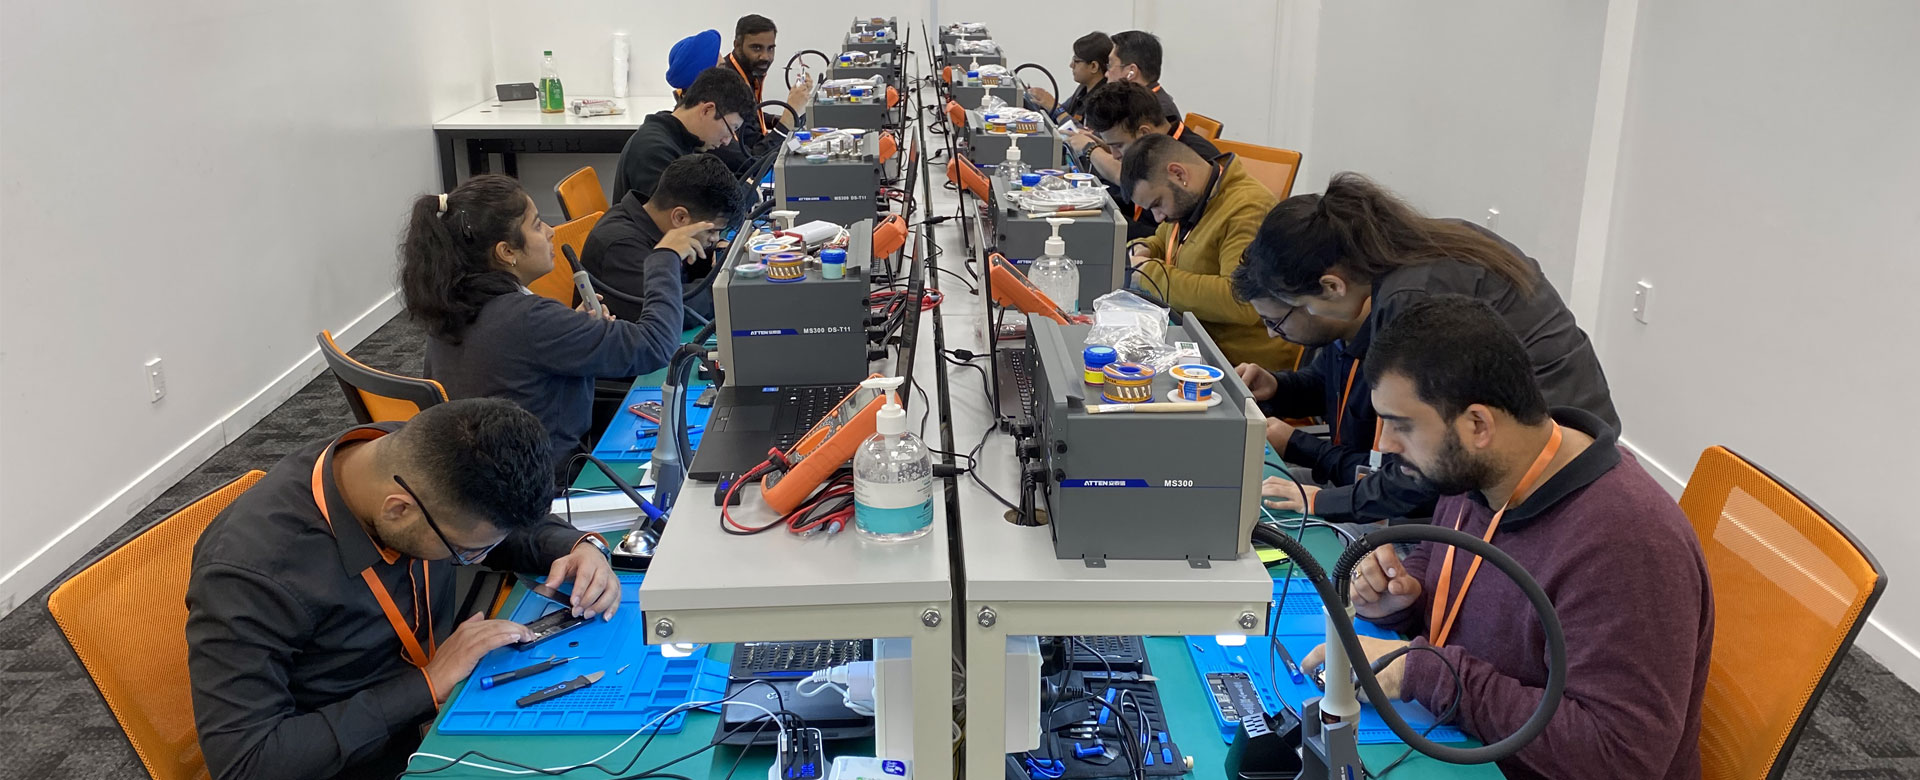 Mobile repair training course